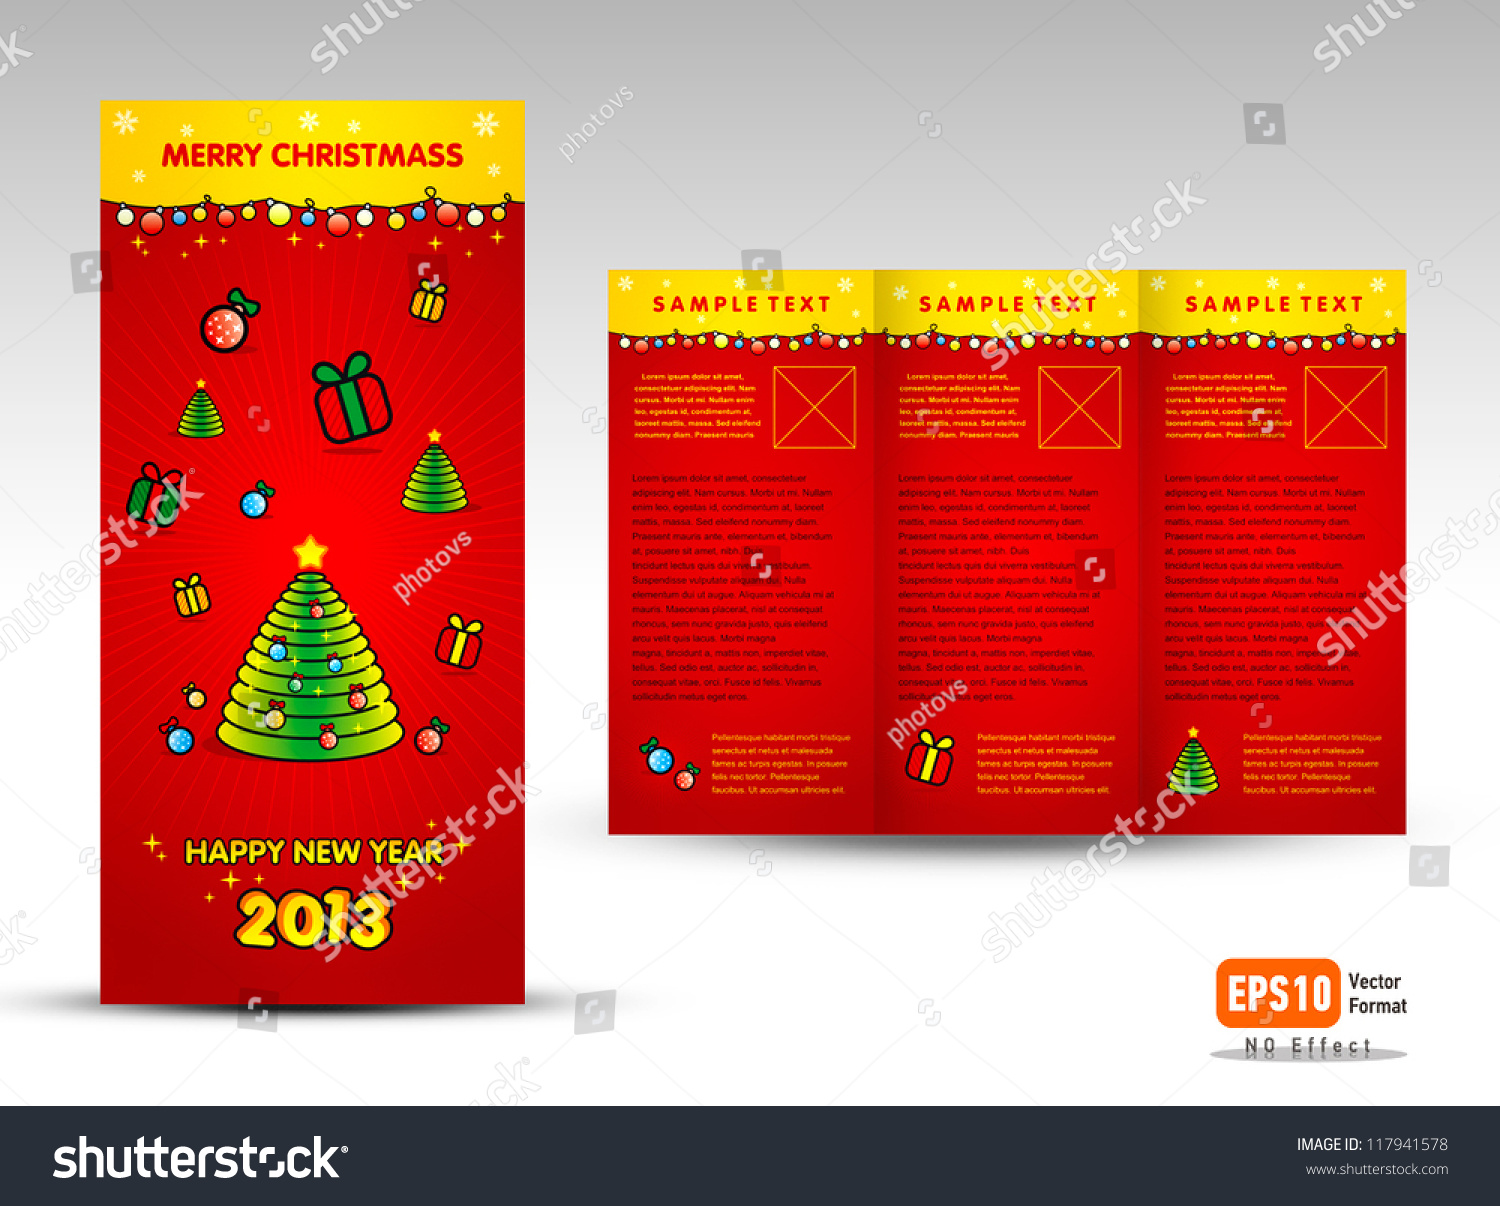 brochure christmas trifold vector layout design stock vector brochure christmas tri fold vector layout design template xmas